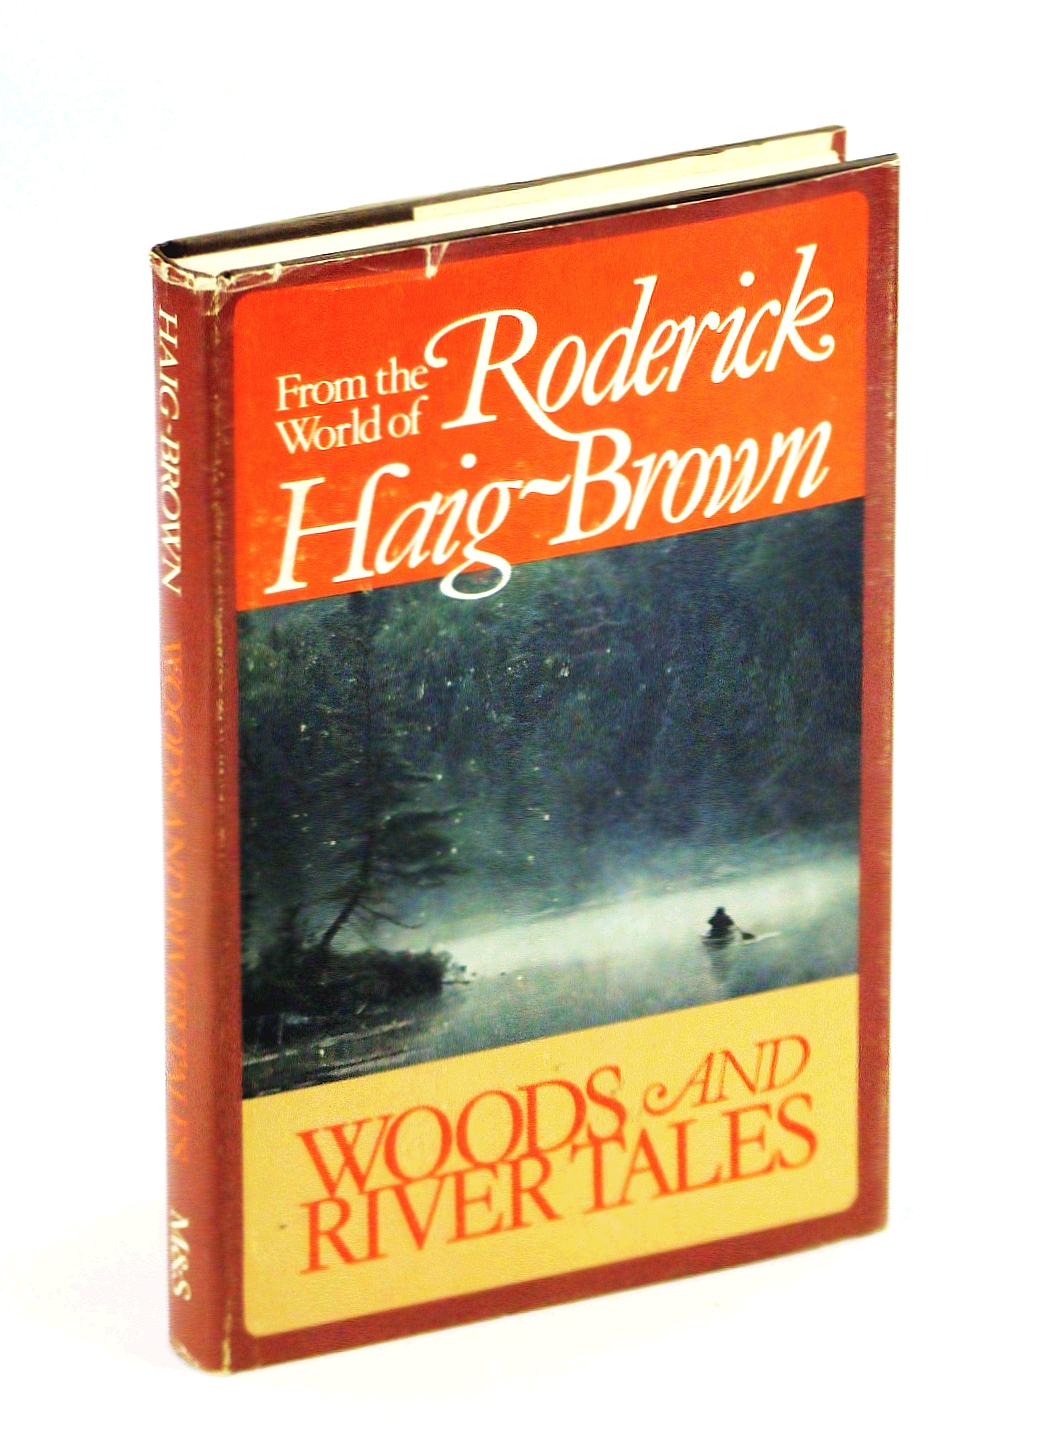 Image for Woods and river tales: From the world of Roderick Haig-Brown